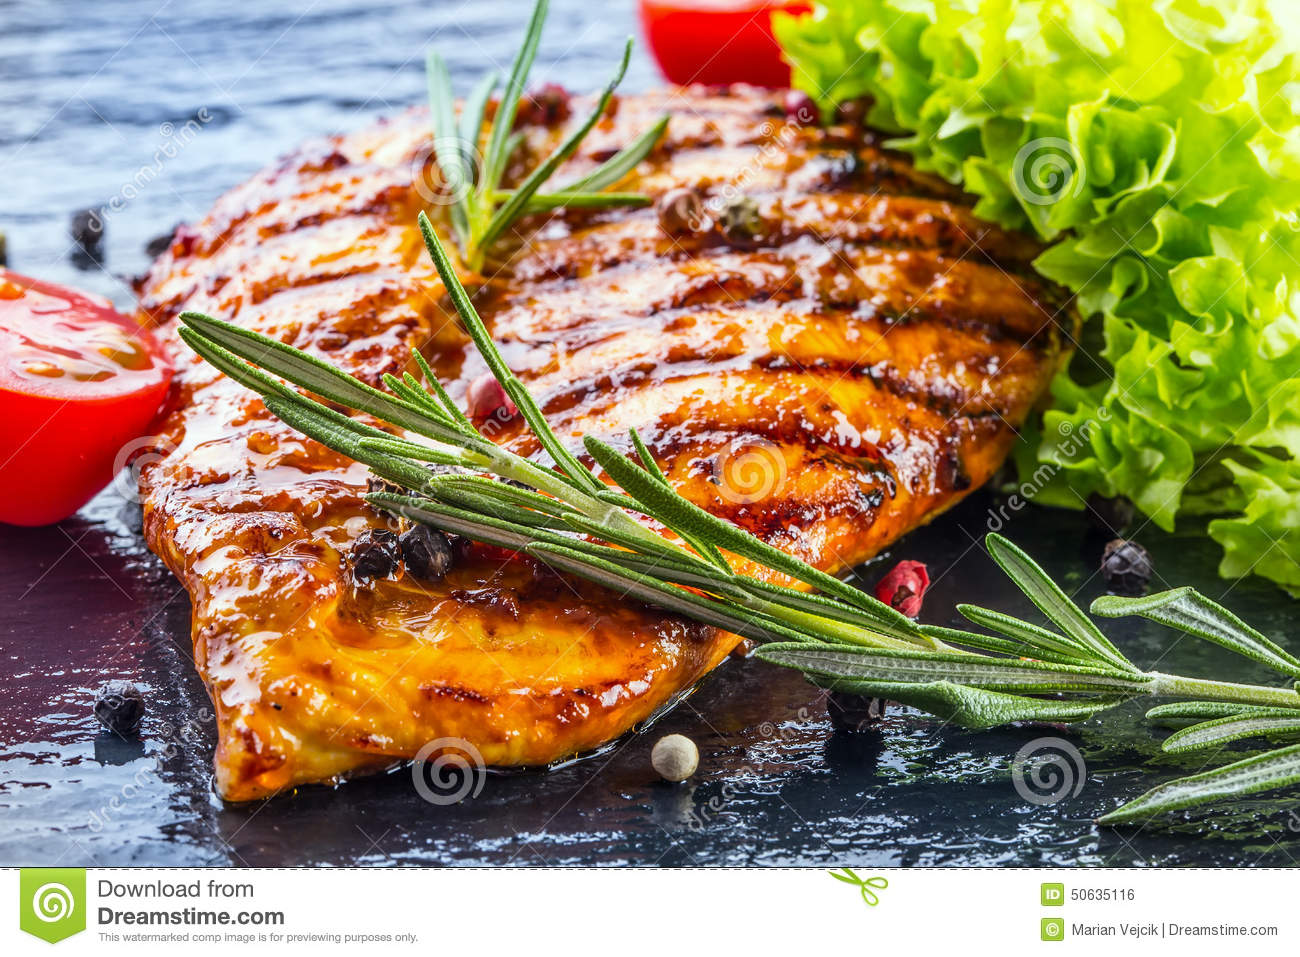 Different herbs royalty free stock image image 16265346 - Different Herbs Royalty Free Stock Image Image 16265346 Steak Chicken Breast Olive Oil Cherry Tomatoes Download